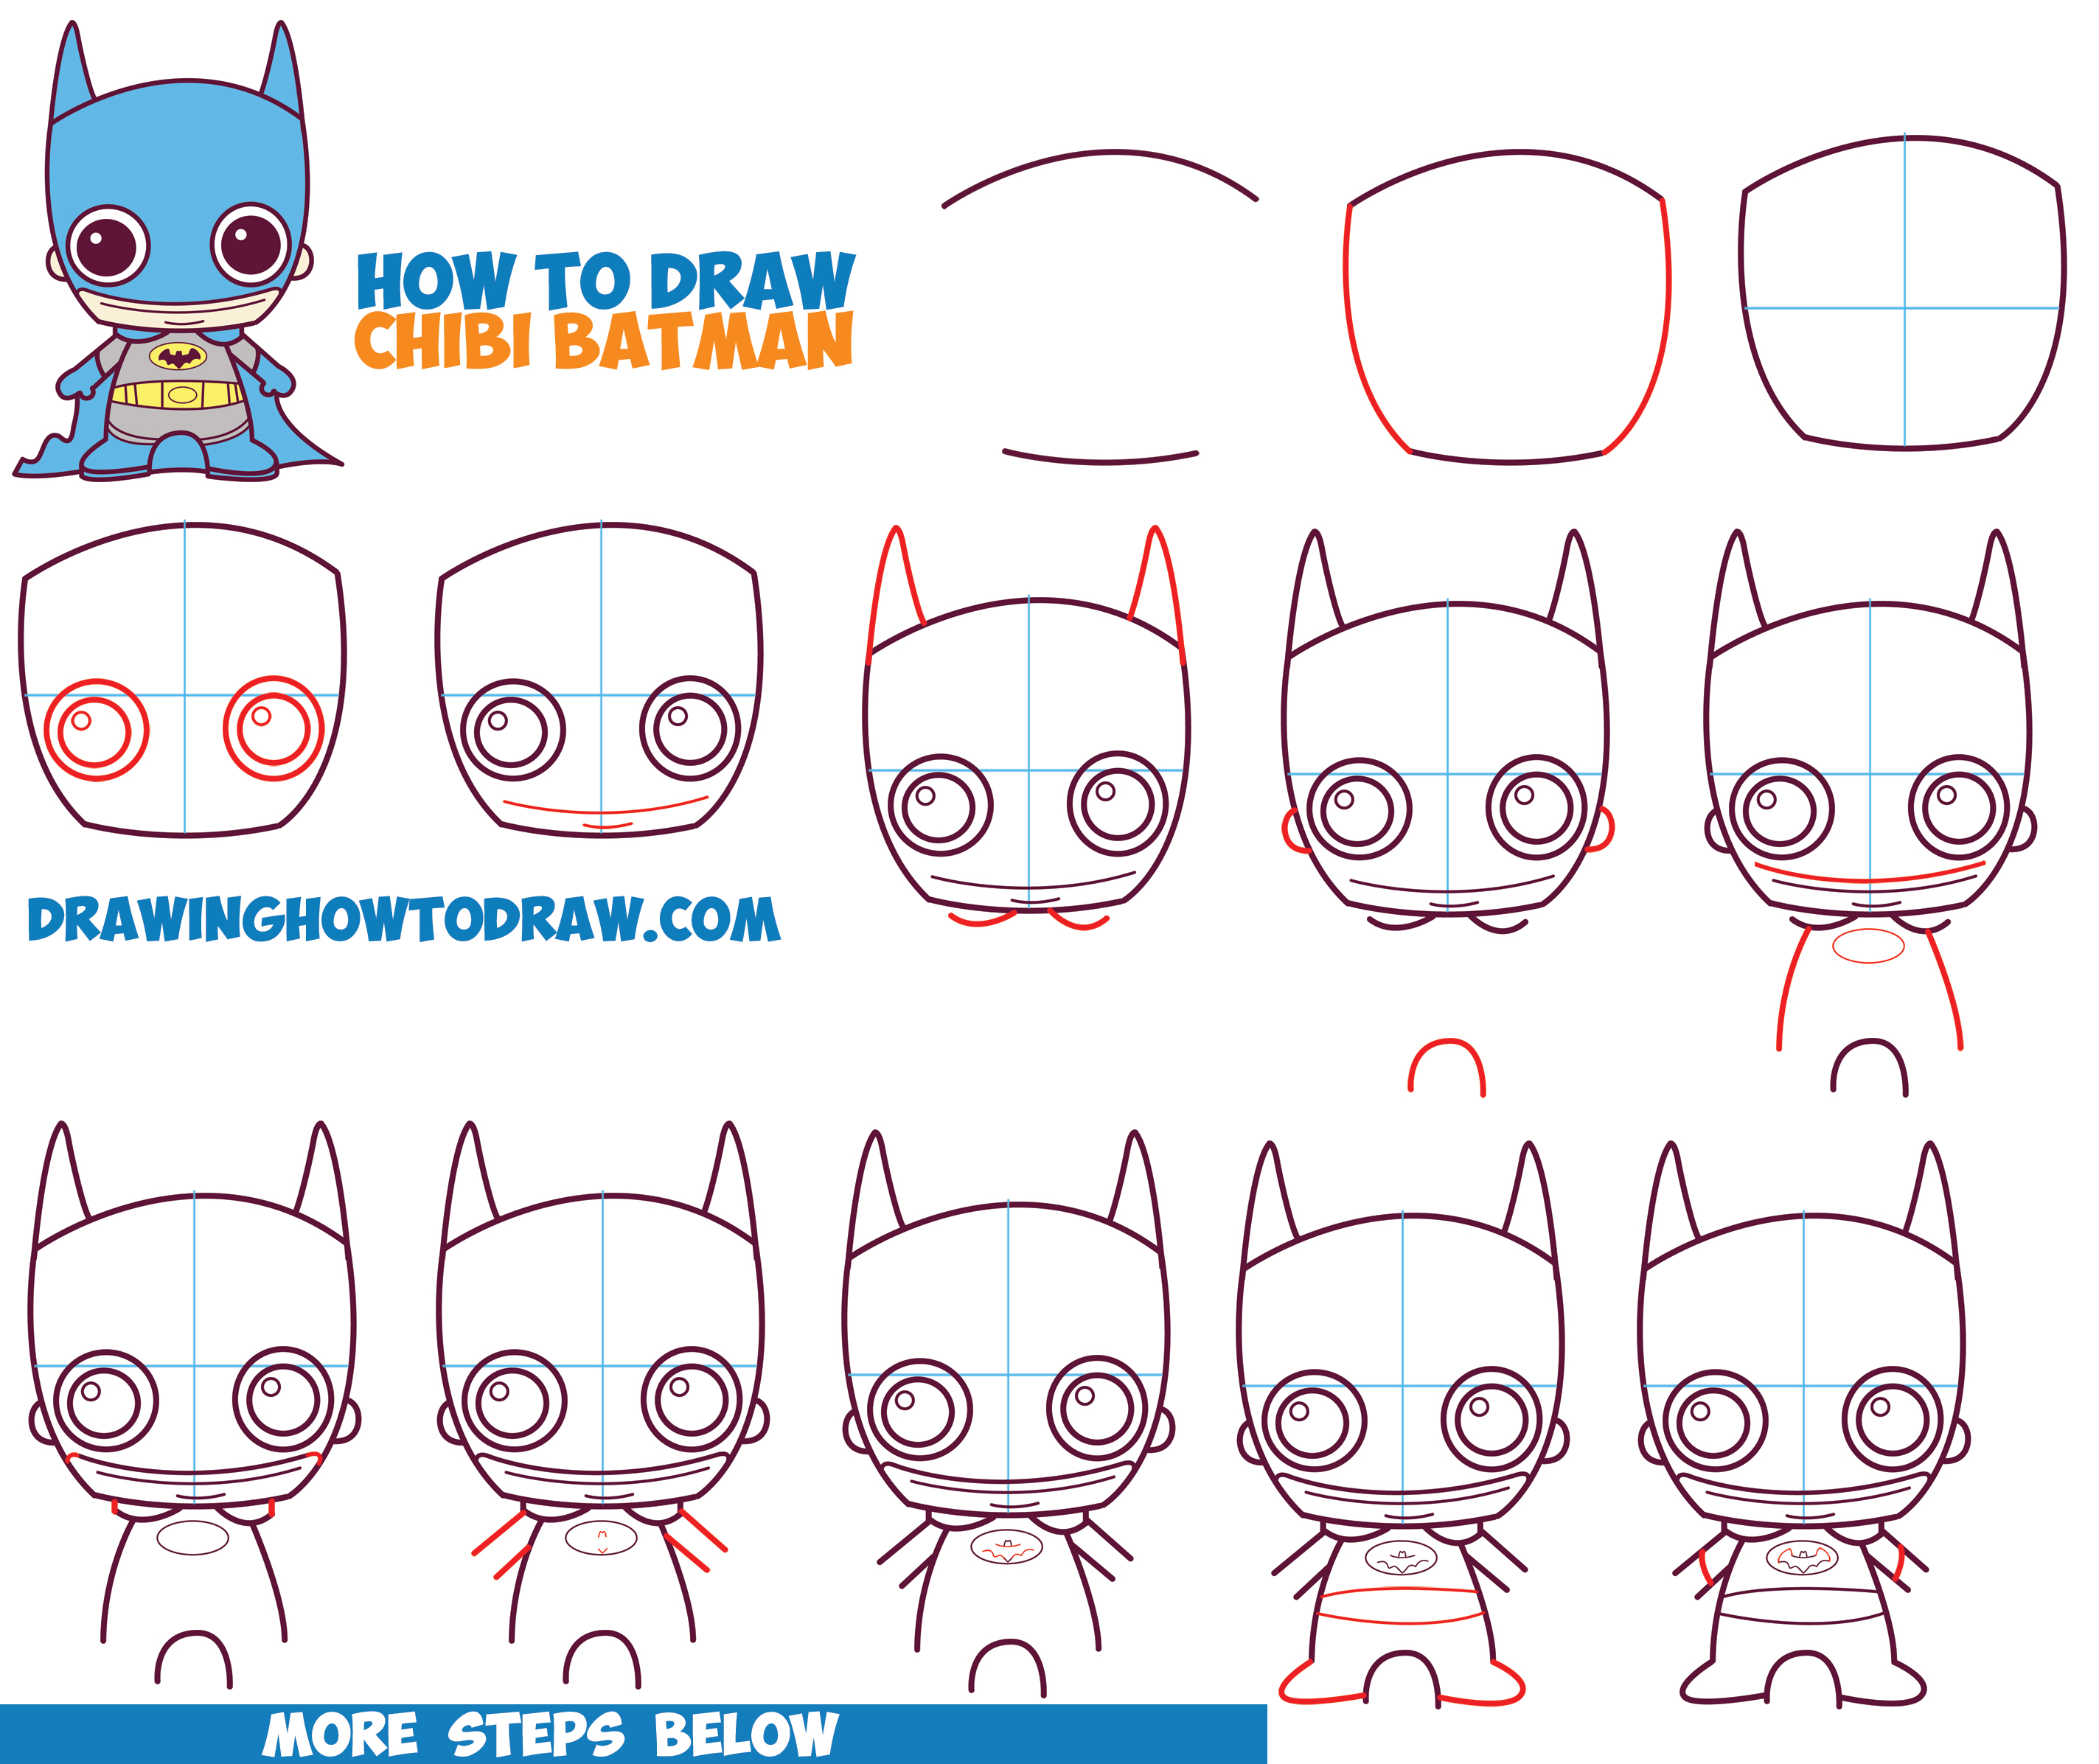 How to Draw Cute Chibi Batman from DC Comics in Easy Step by Step Drawing Tutorial for Kids